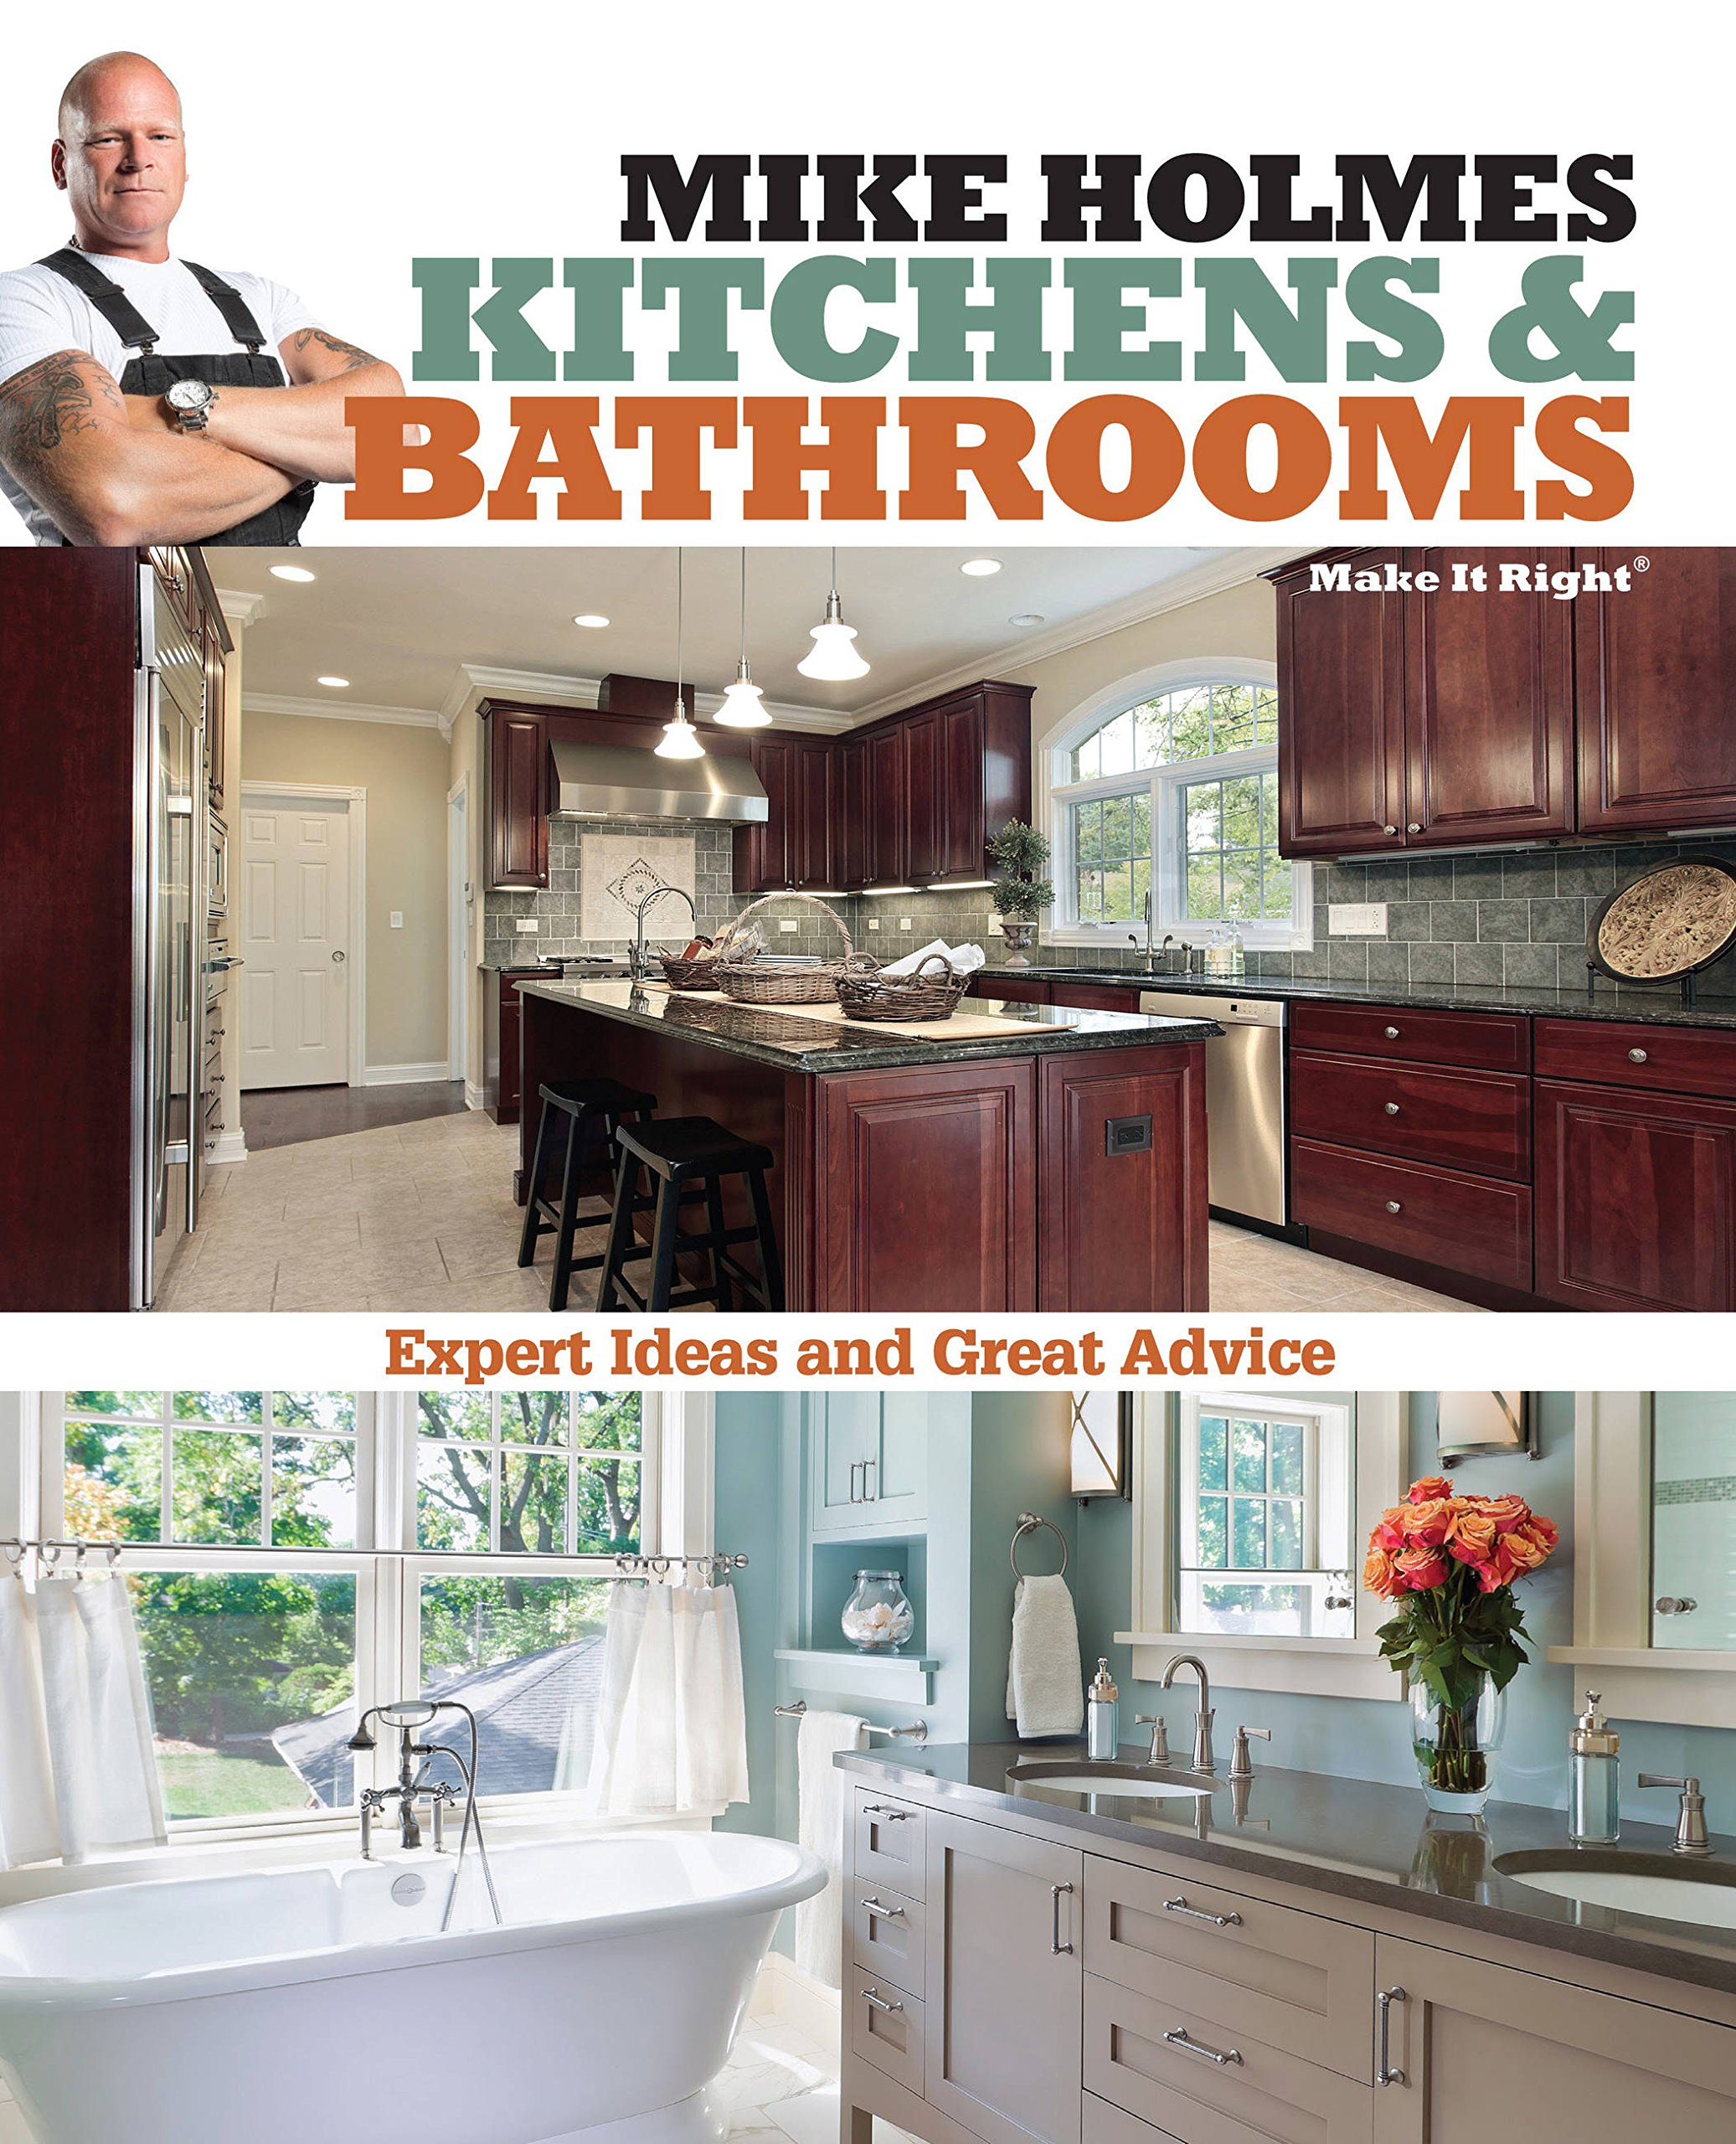 Mike holmes kitchens bathrooms make it right mike holmes mike holmes kitchens bathrooms make it right mike holmes 9781603209670 amazon books solutioingenieria Gallery